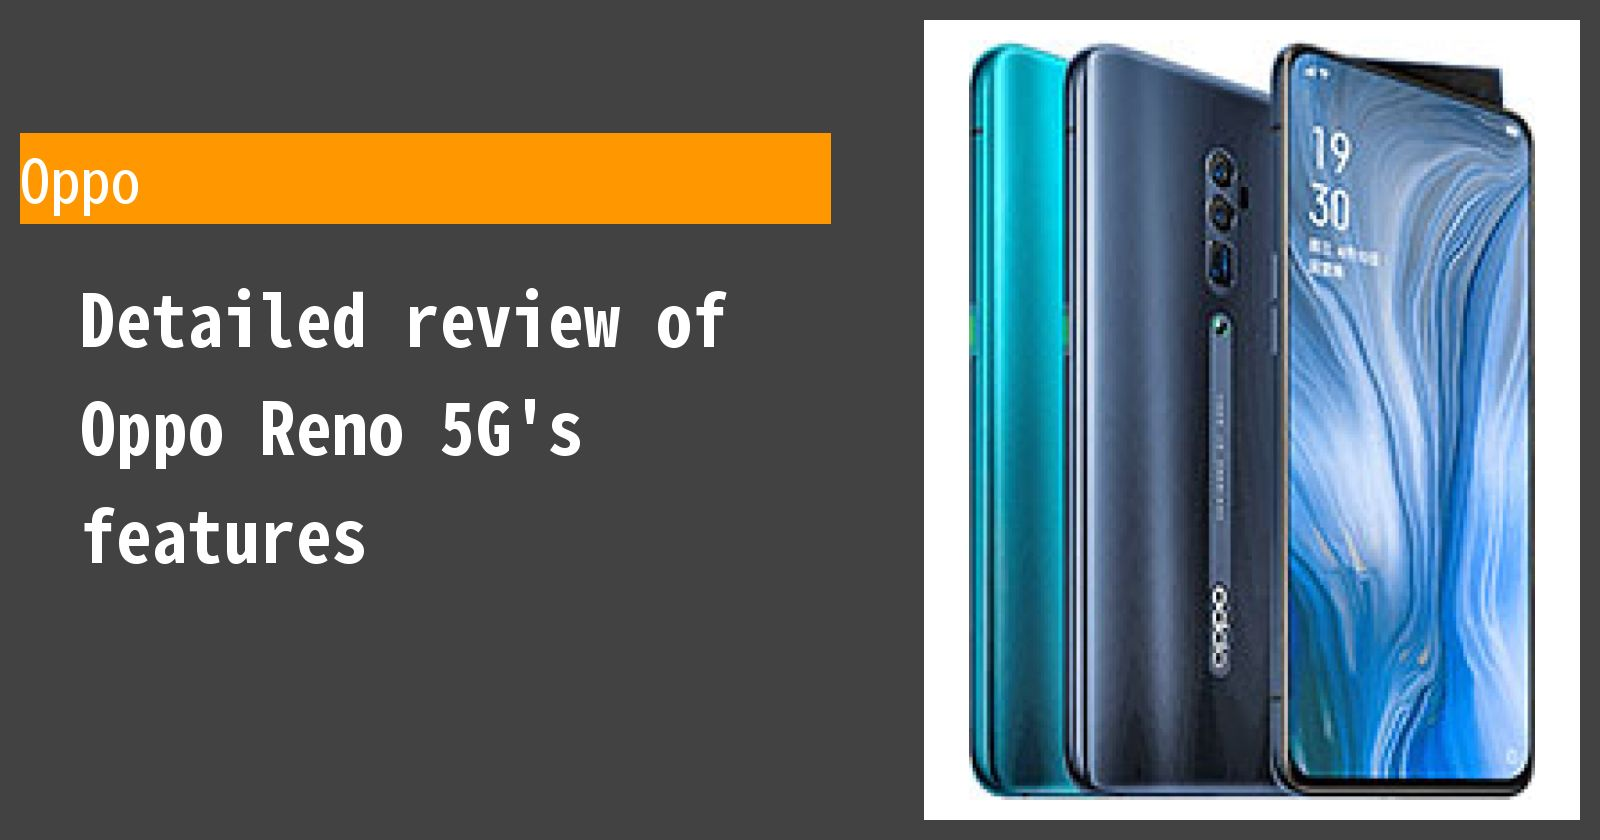 Detailed review of Oppo Reno 5G's features